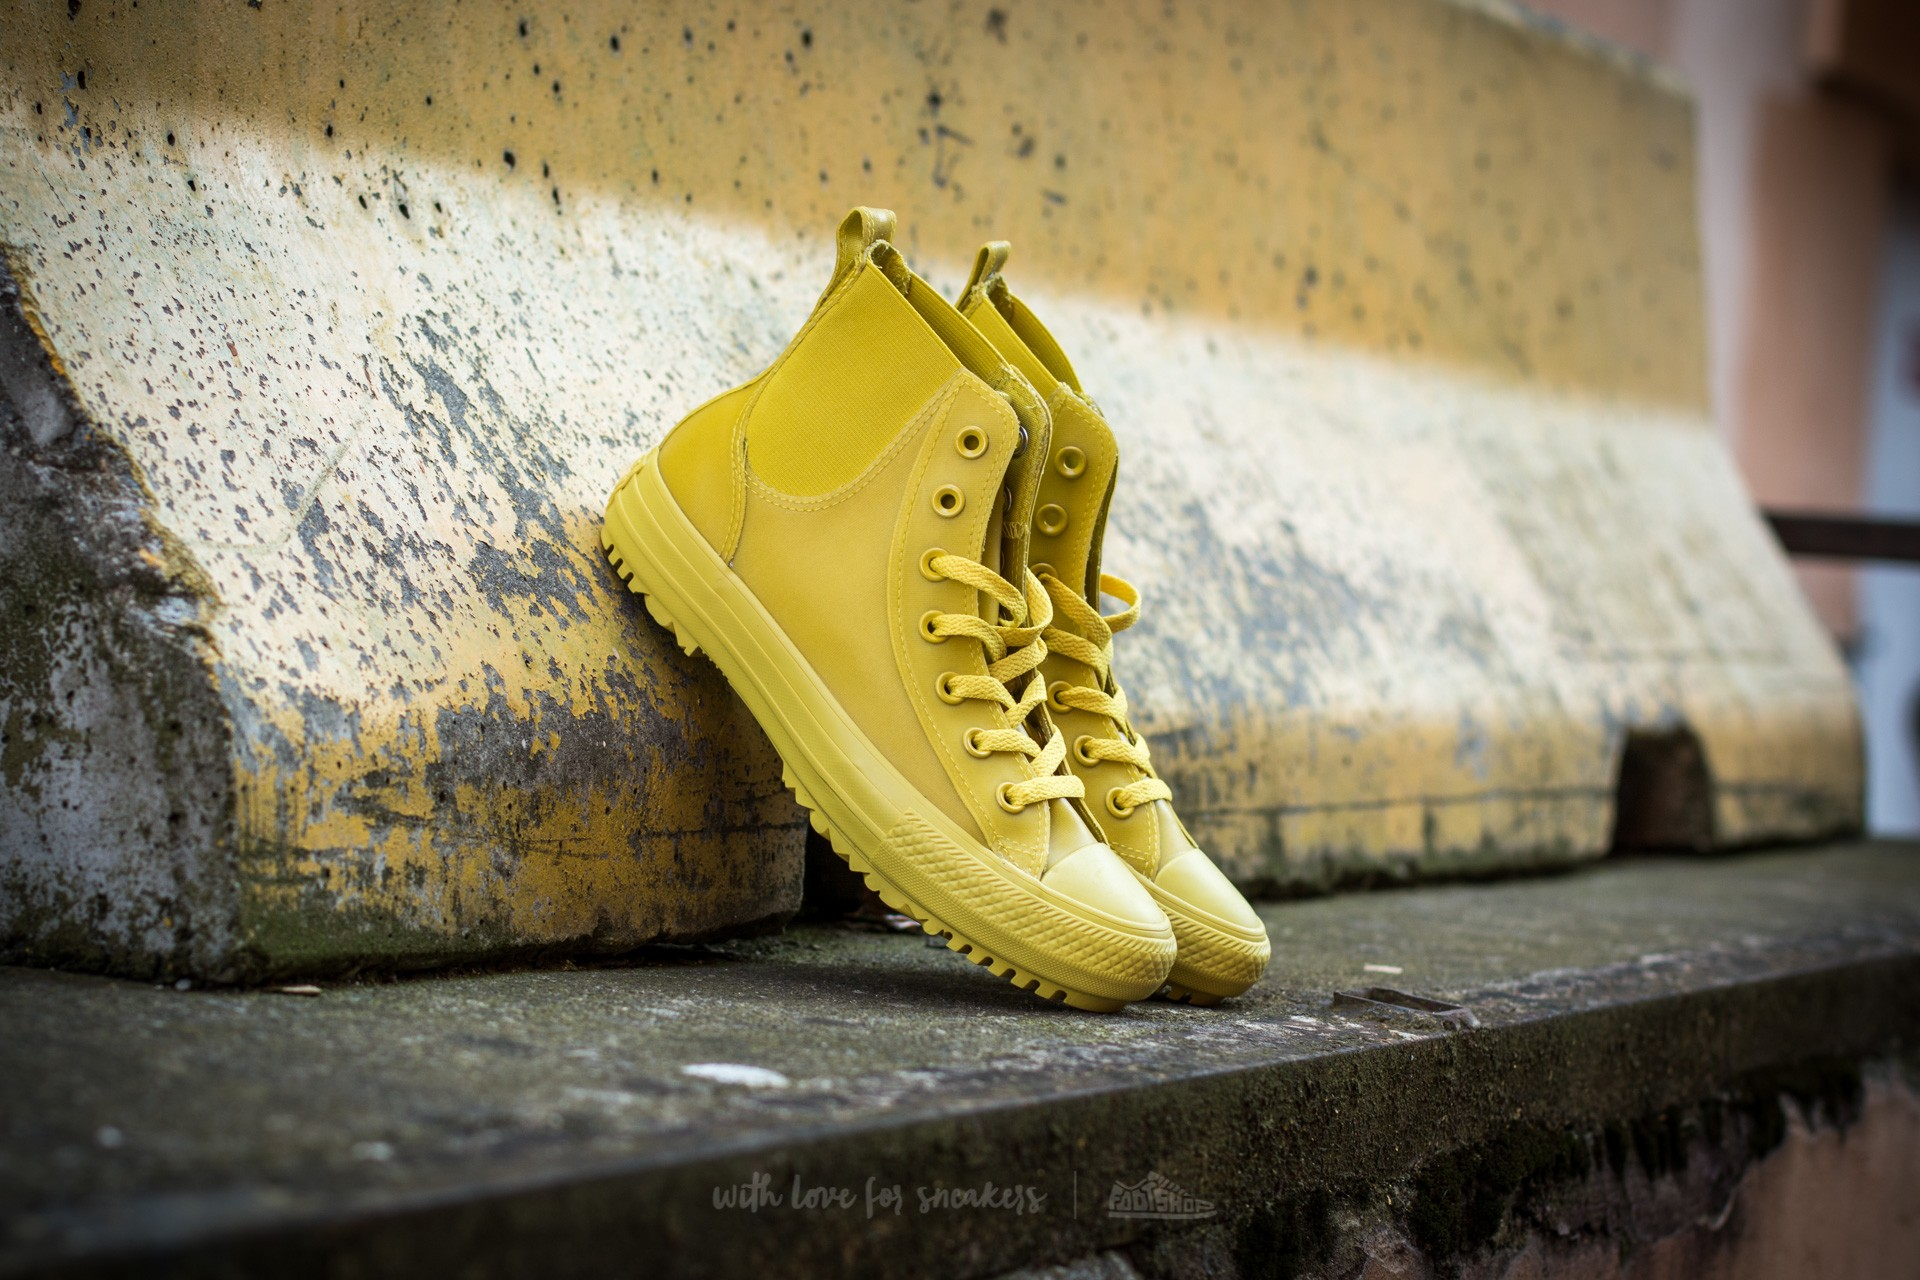 Converse Chuck Taylor All Star Chelsea Boot Rubber Hi Bitter Lemon/ Bitter Lemon